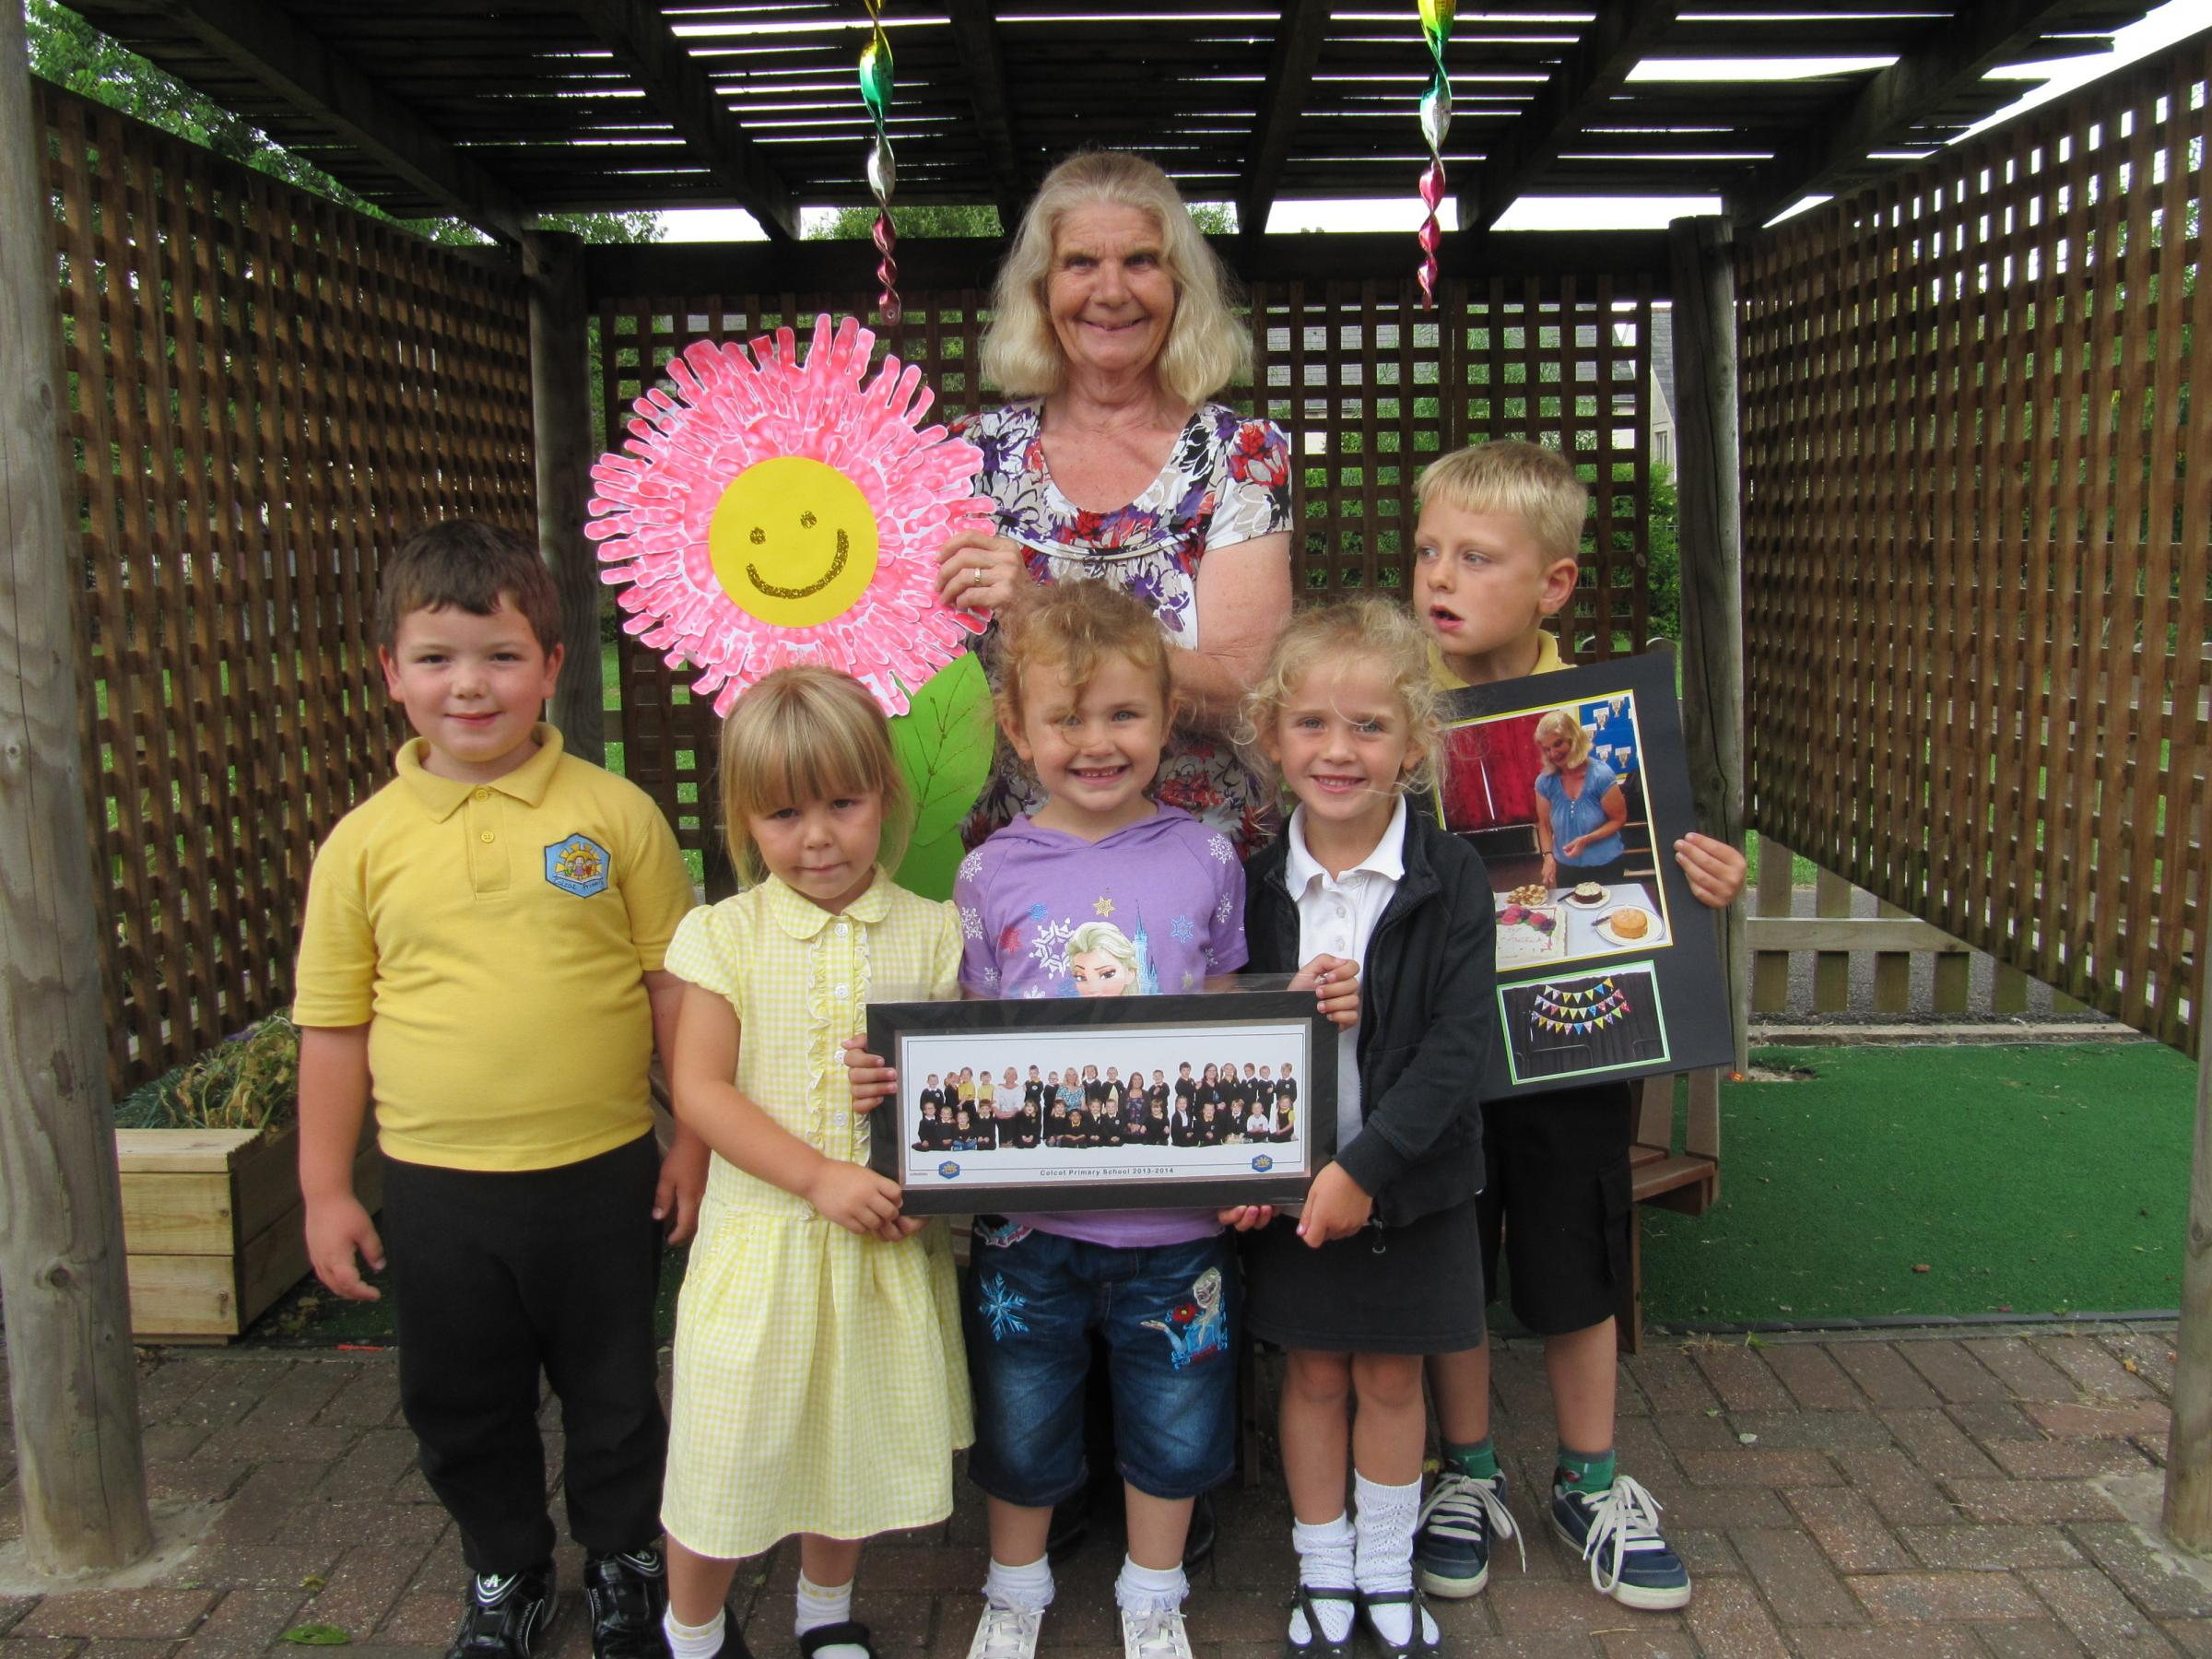 RETIRING: Mrs Angela Ayres with pupils from Colcot Primary School on her last day (8374979)